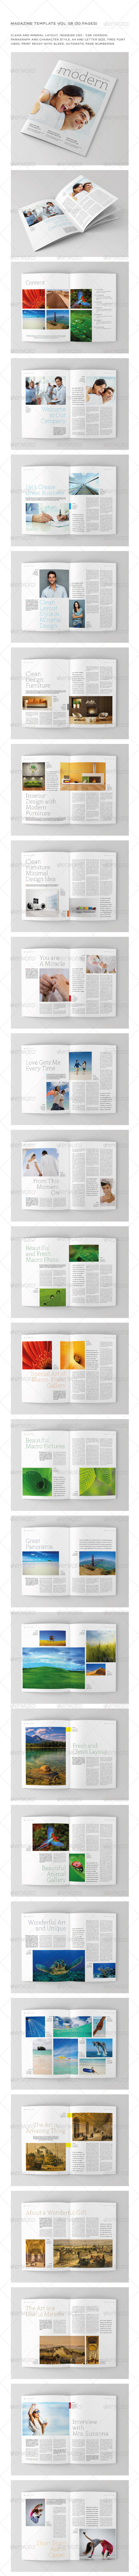 A4/Letter 50 Pages mgz (Vol. 8) - Magazines Print Templates